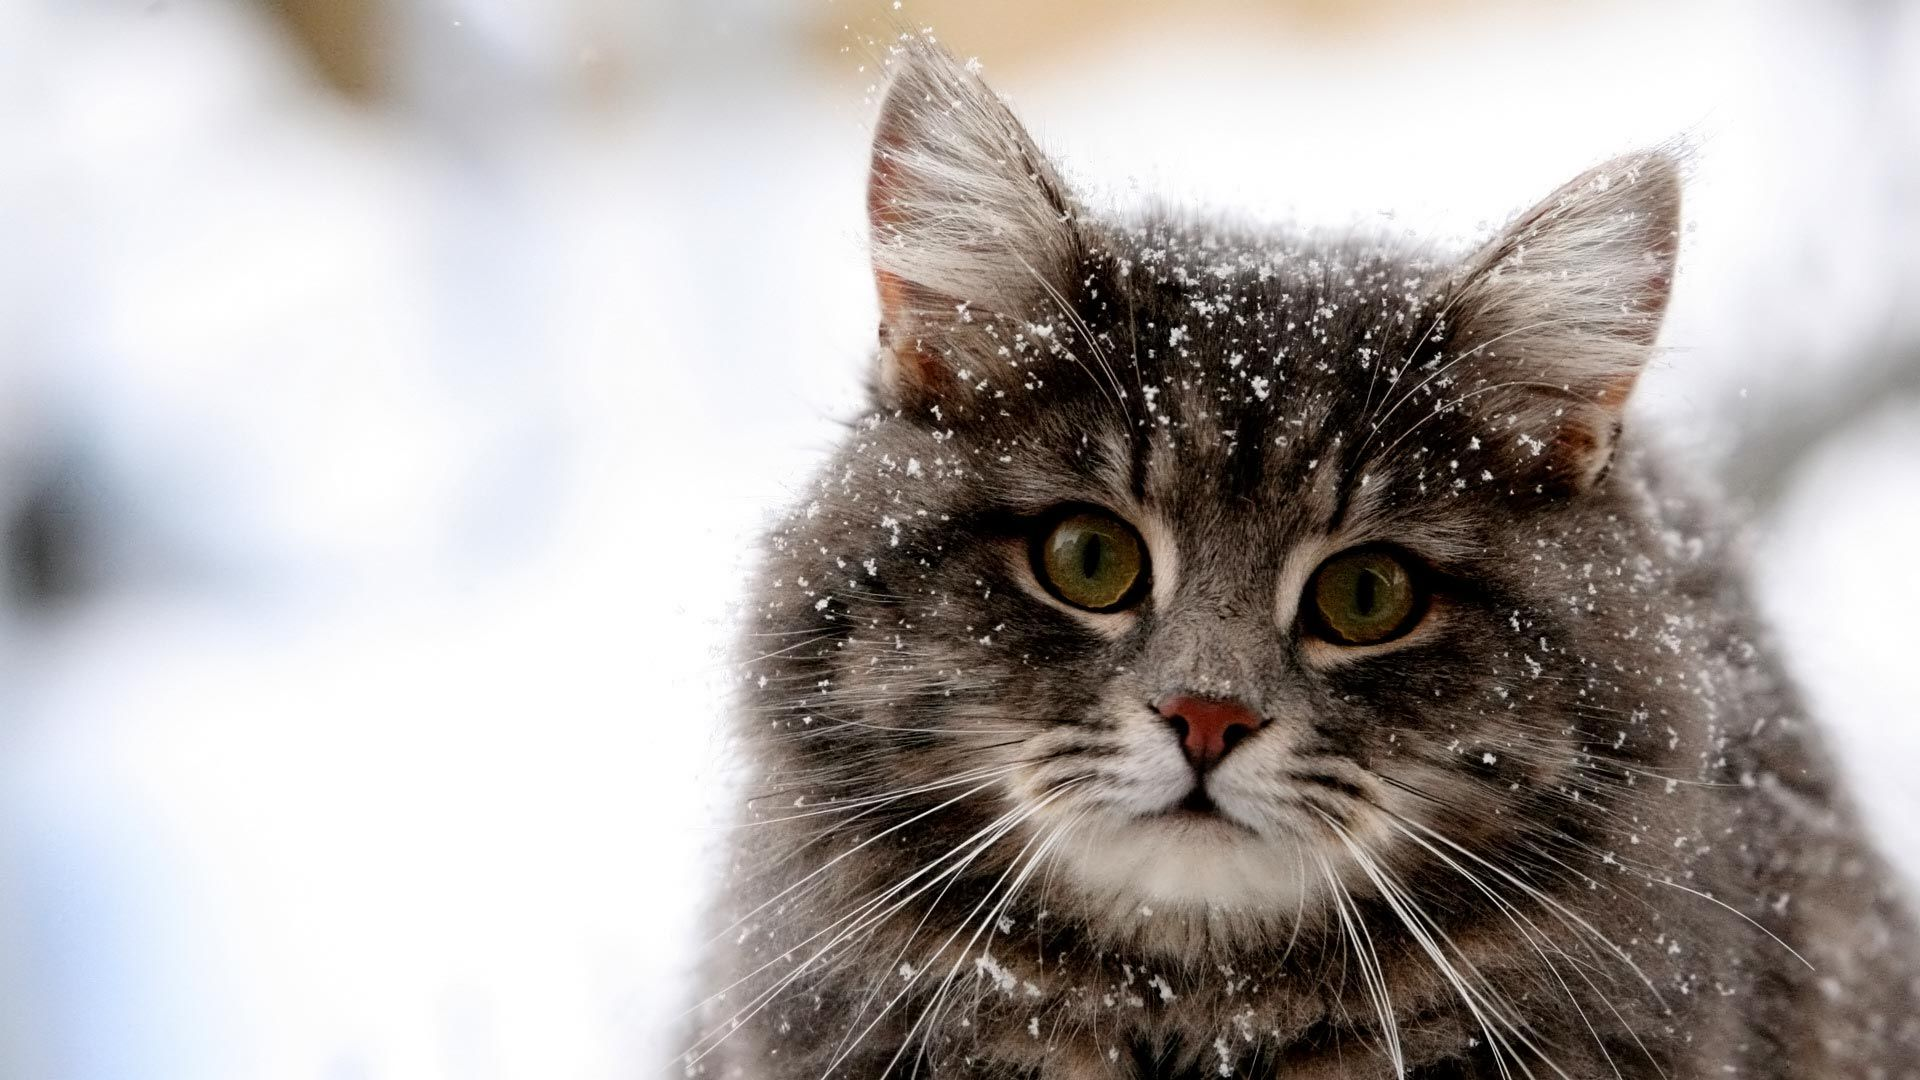 Cute Cats Wallpapers Wallpaper × Cats Images Wallpapers